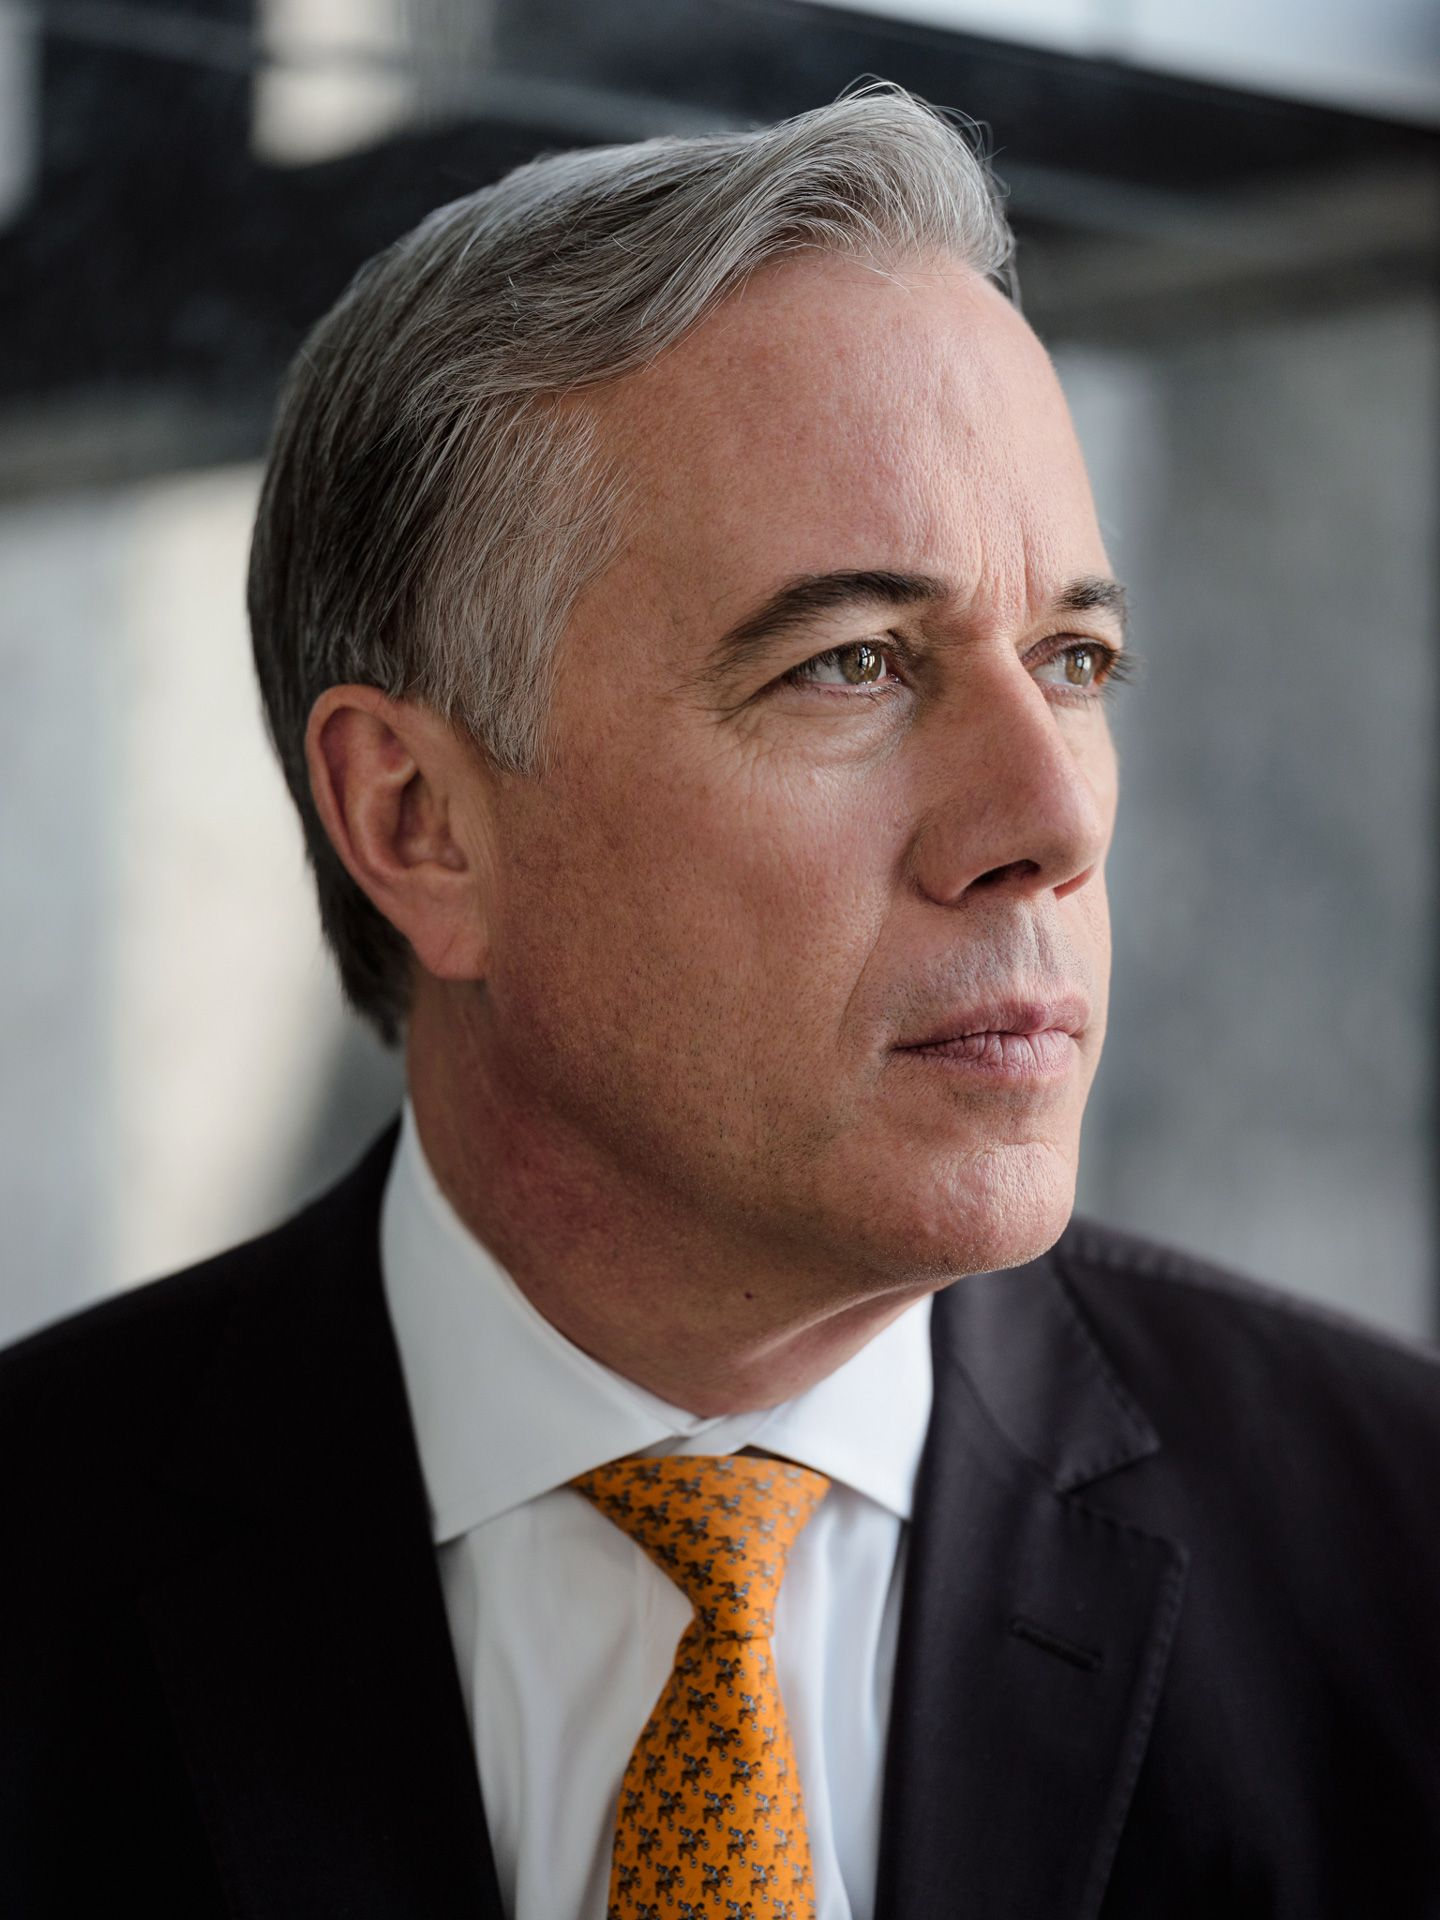 middle aged man with grey hair and light blue eyes wearing professional suit with orange tie looking out the window photographed by Alexi Hobbs for PSP